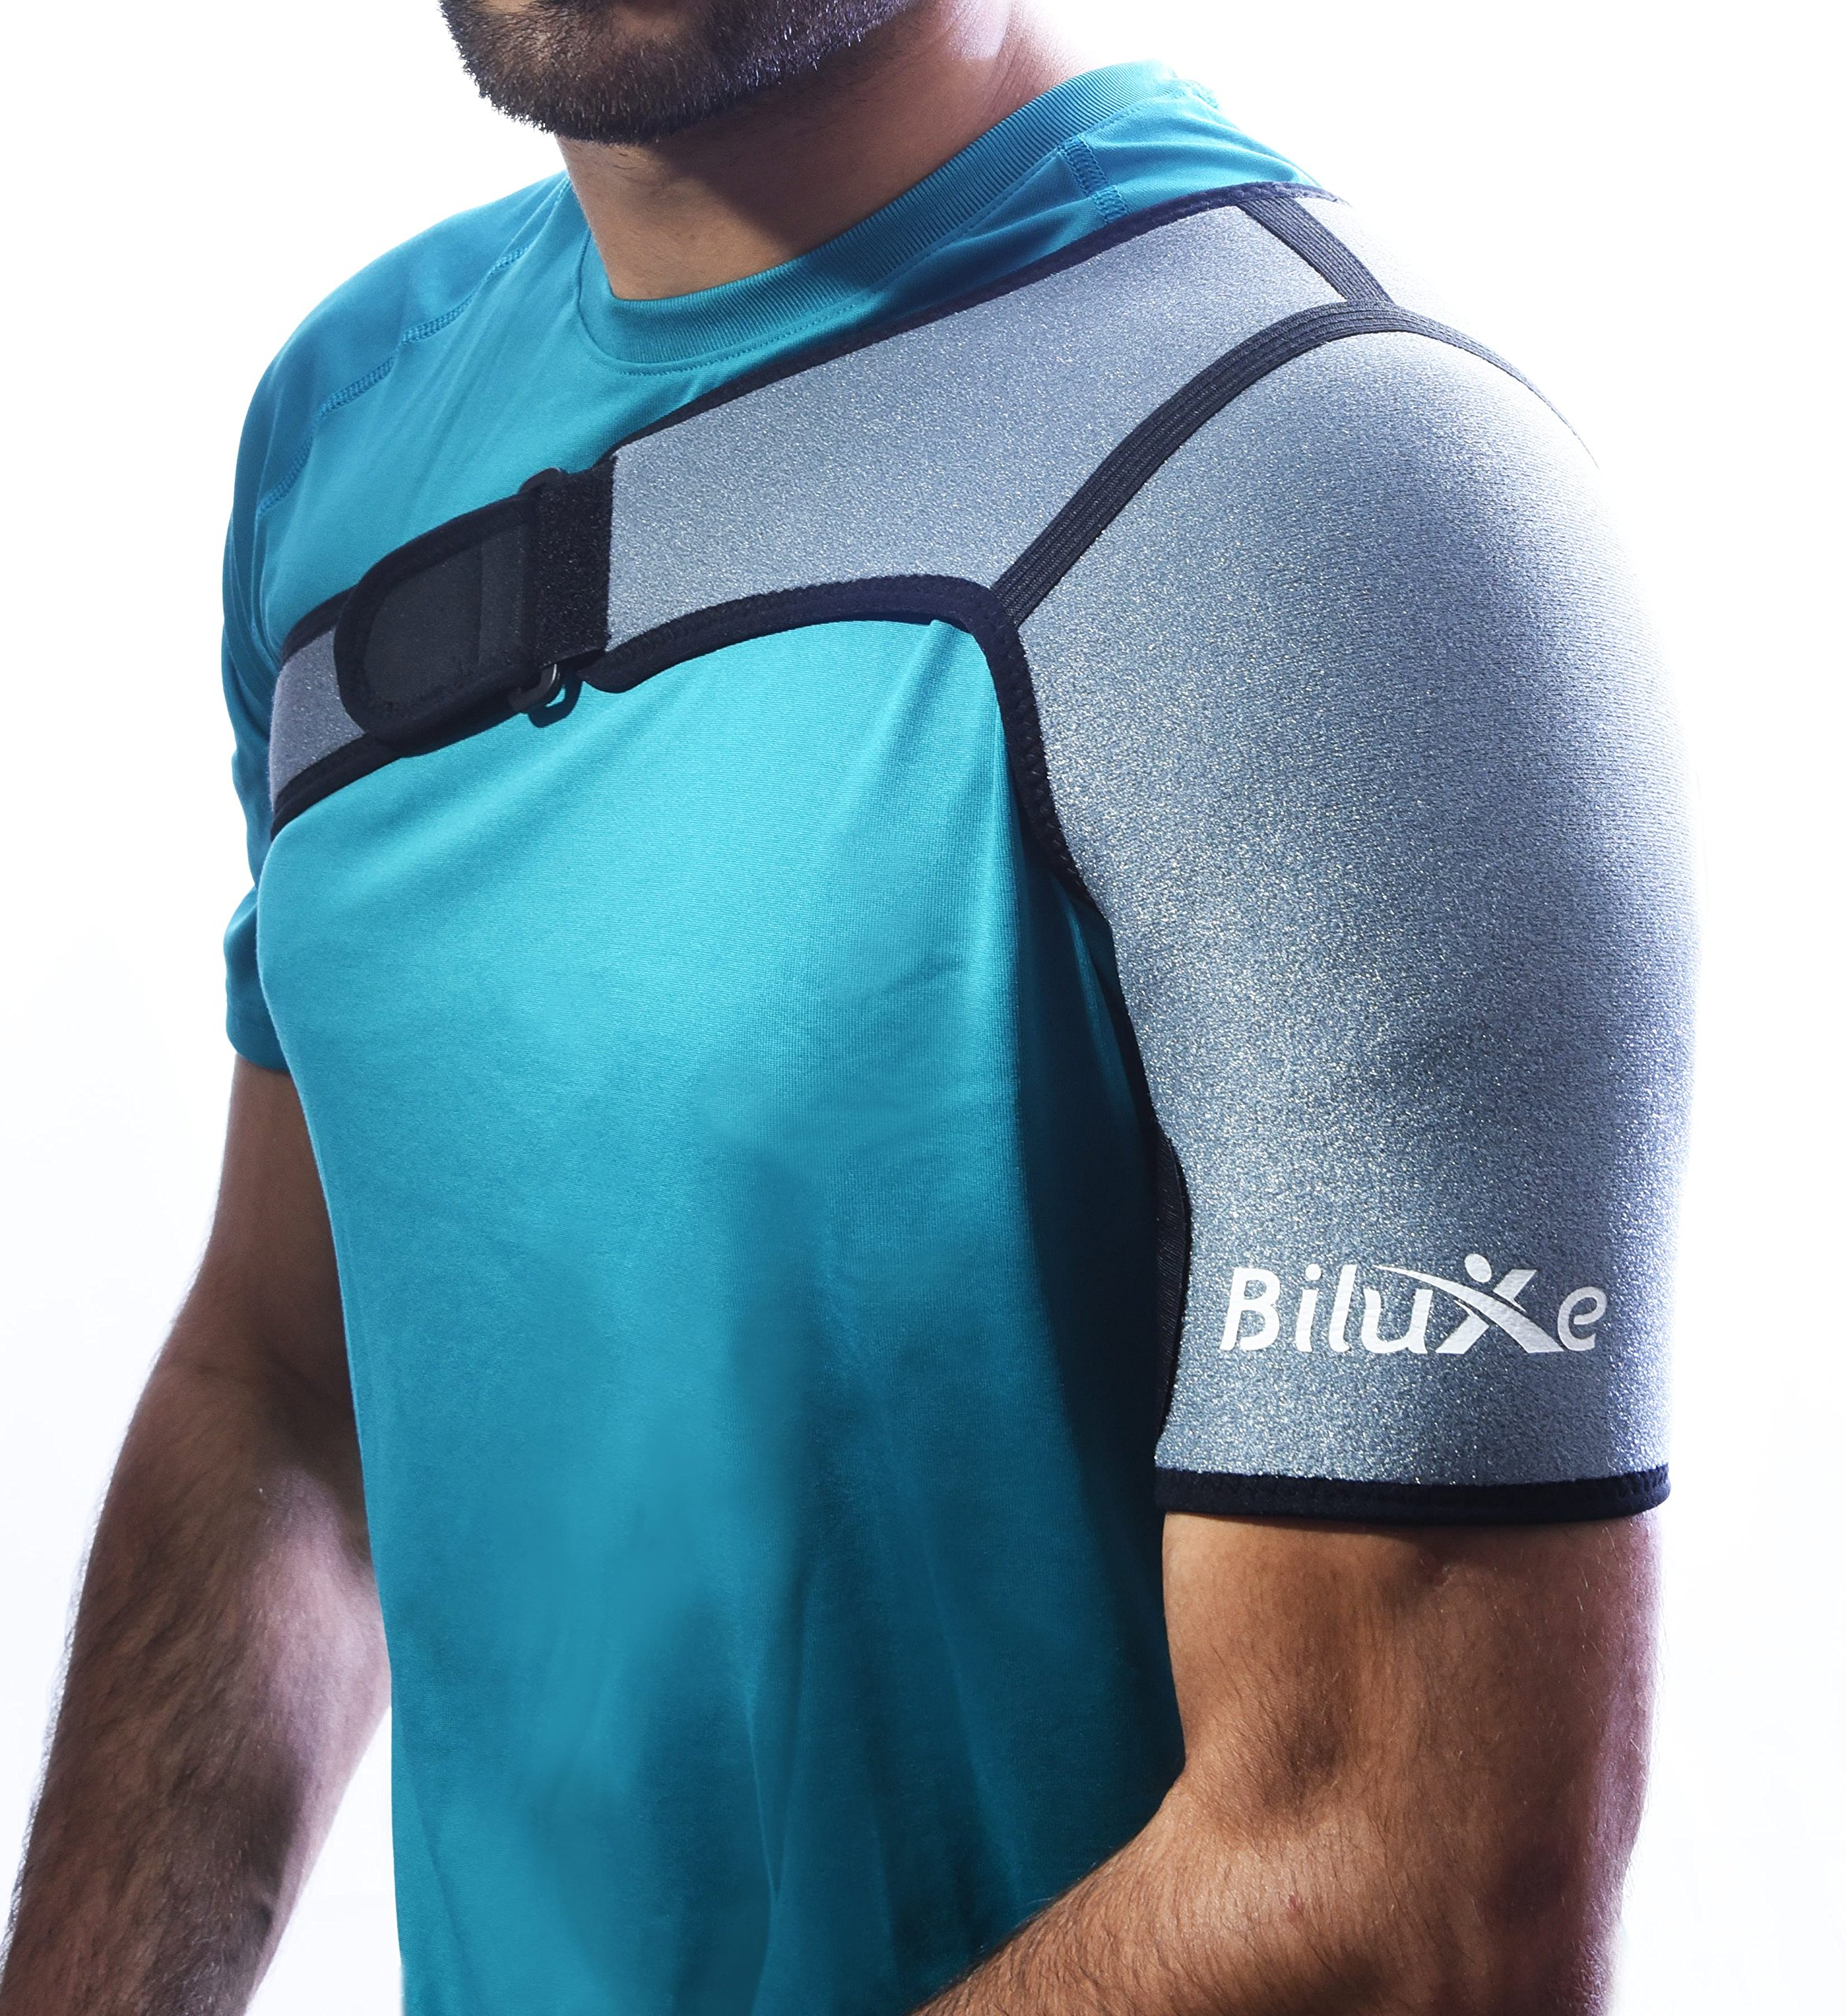 Shoulder Brace - Adjustable Support for Men and Women - Neoprene Compression Sleeve - Relieves Pain for Rotator Cuff Injury, Dislocated Joint, Sport Injuries - Left or Right Compatible - Medium Size